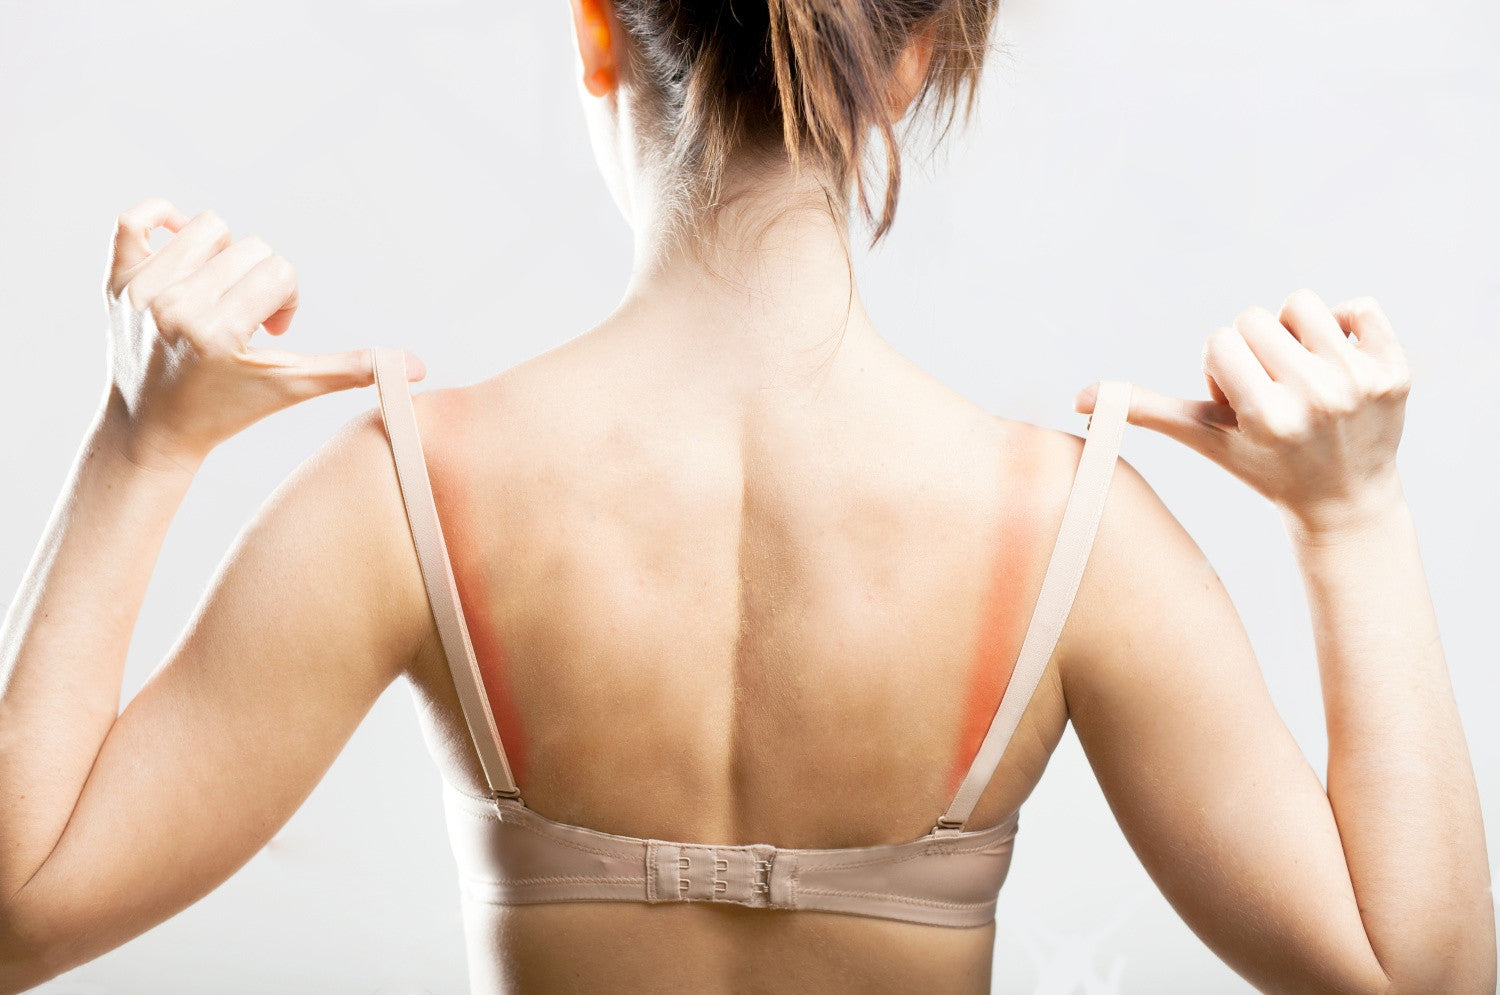 Why do I get rash near my bra area?